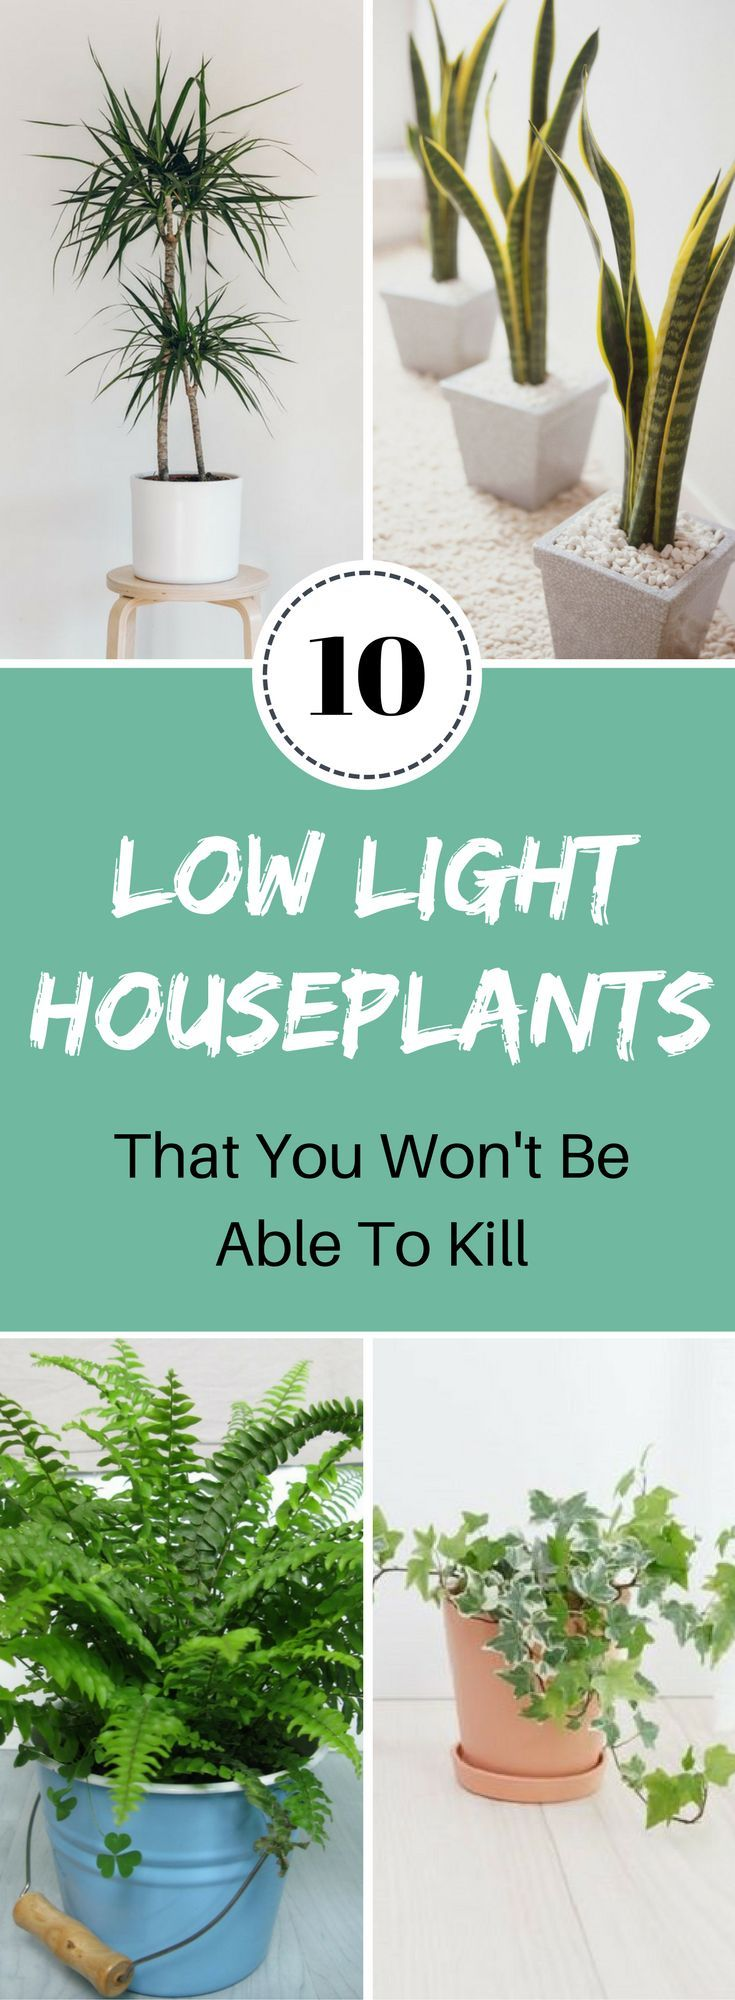 Wow these low light houseplants are awesome for instantly brightening up your living space.  #lowlighthouseplants #houseplants #easyhouseplants